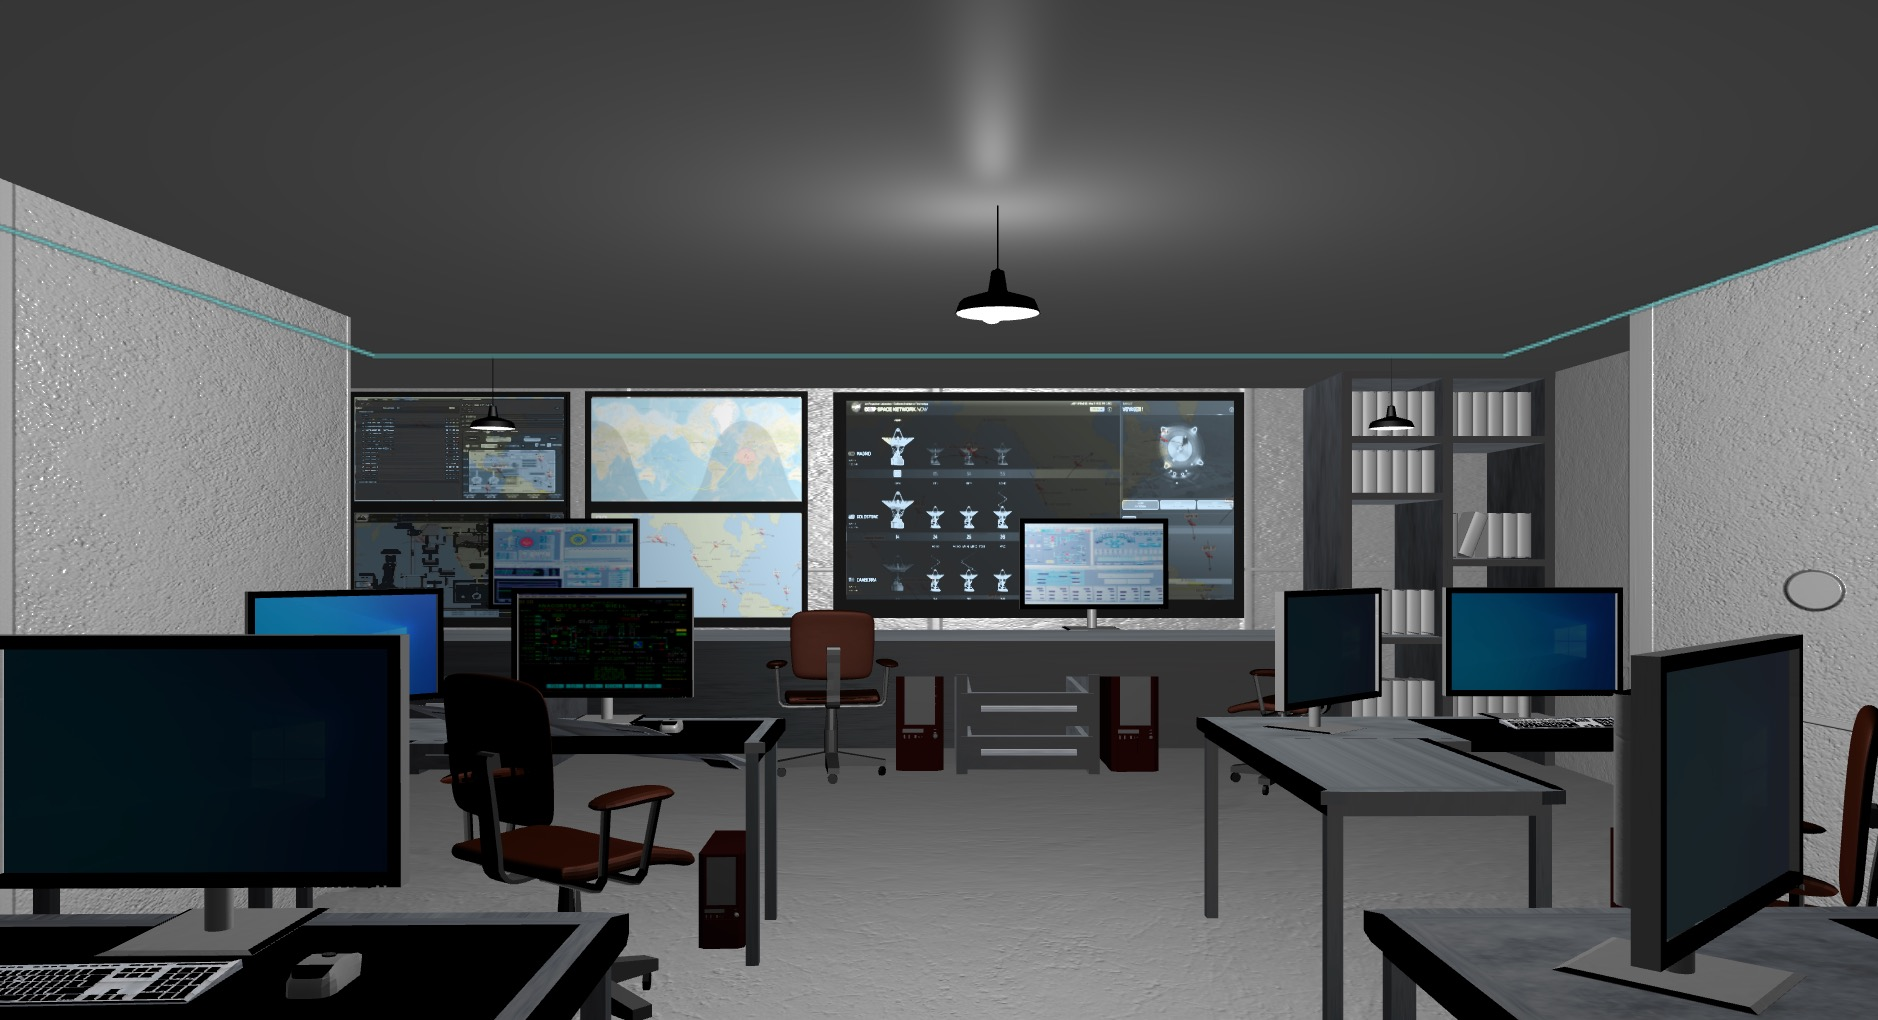 A virtual rendering of a satellite command center, featuring empty desks and large computer monitors